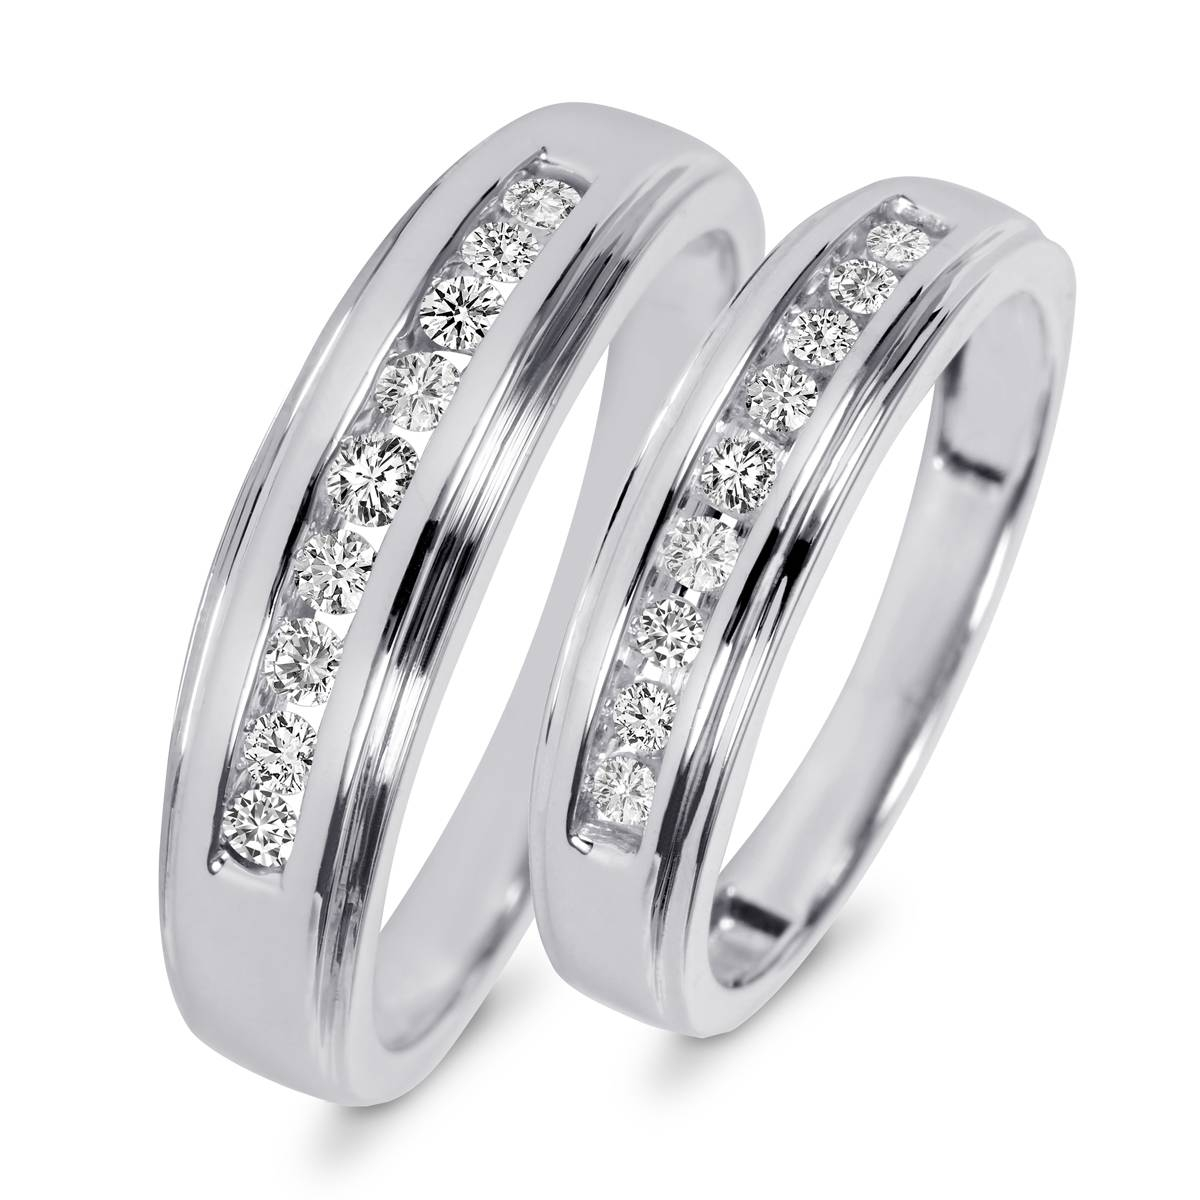 3/8 Carat T.w. Diamond His And Hers Wedding Band Set 14K White Gold Regarding His And Her Wedding Bands Sets (Gallery 2 of 15)